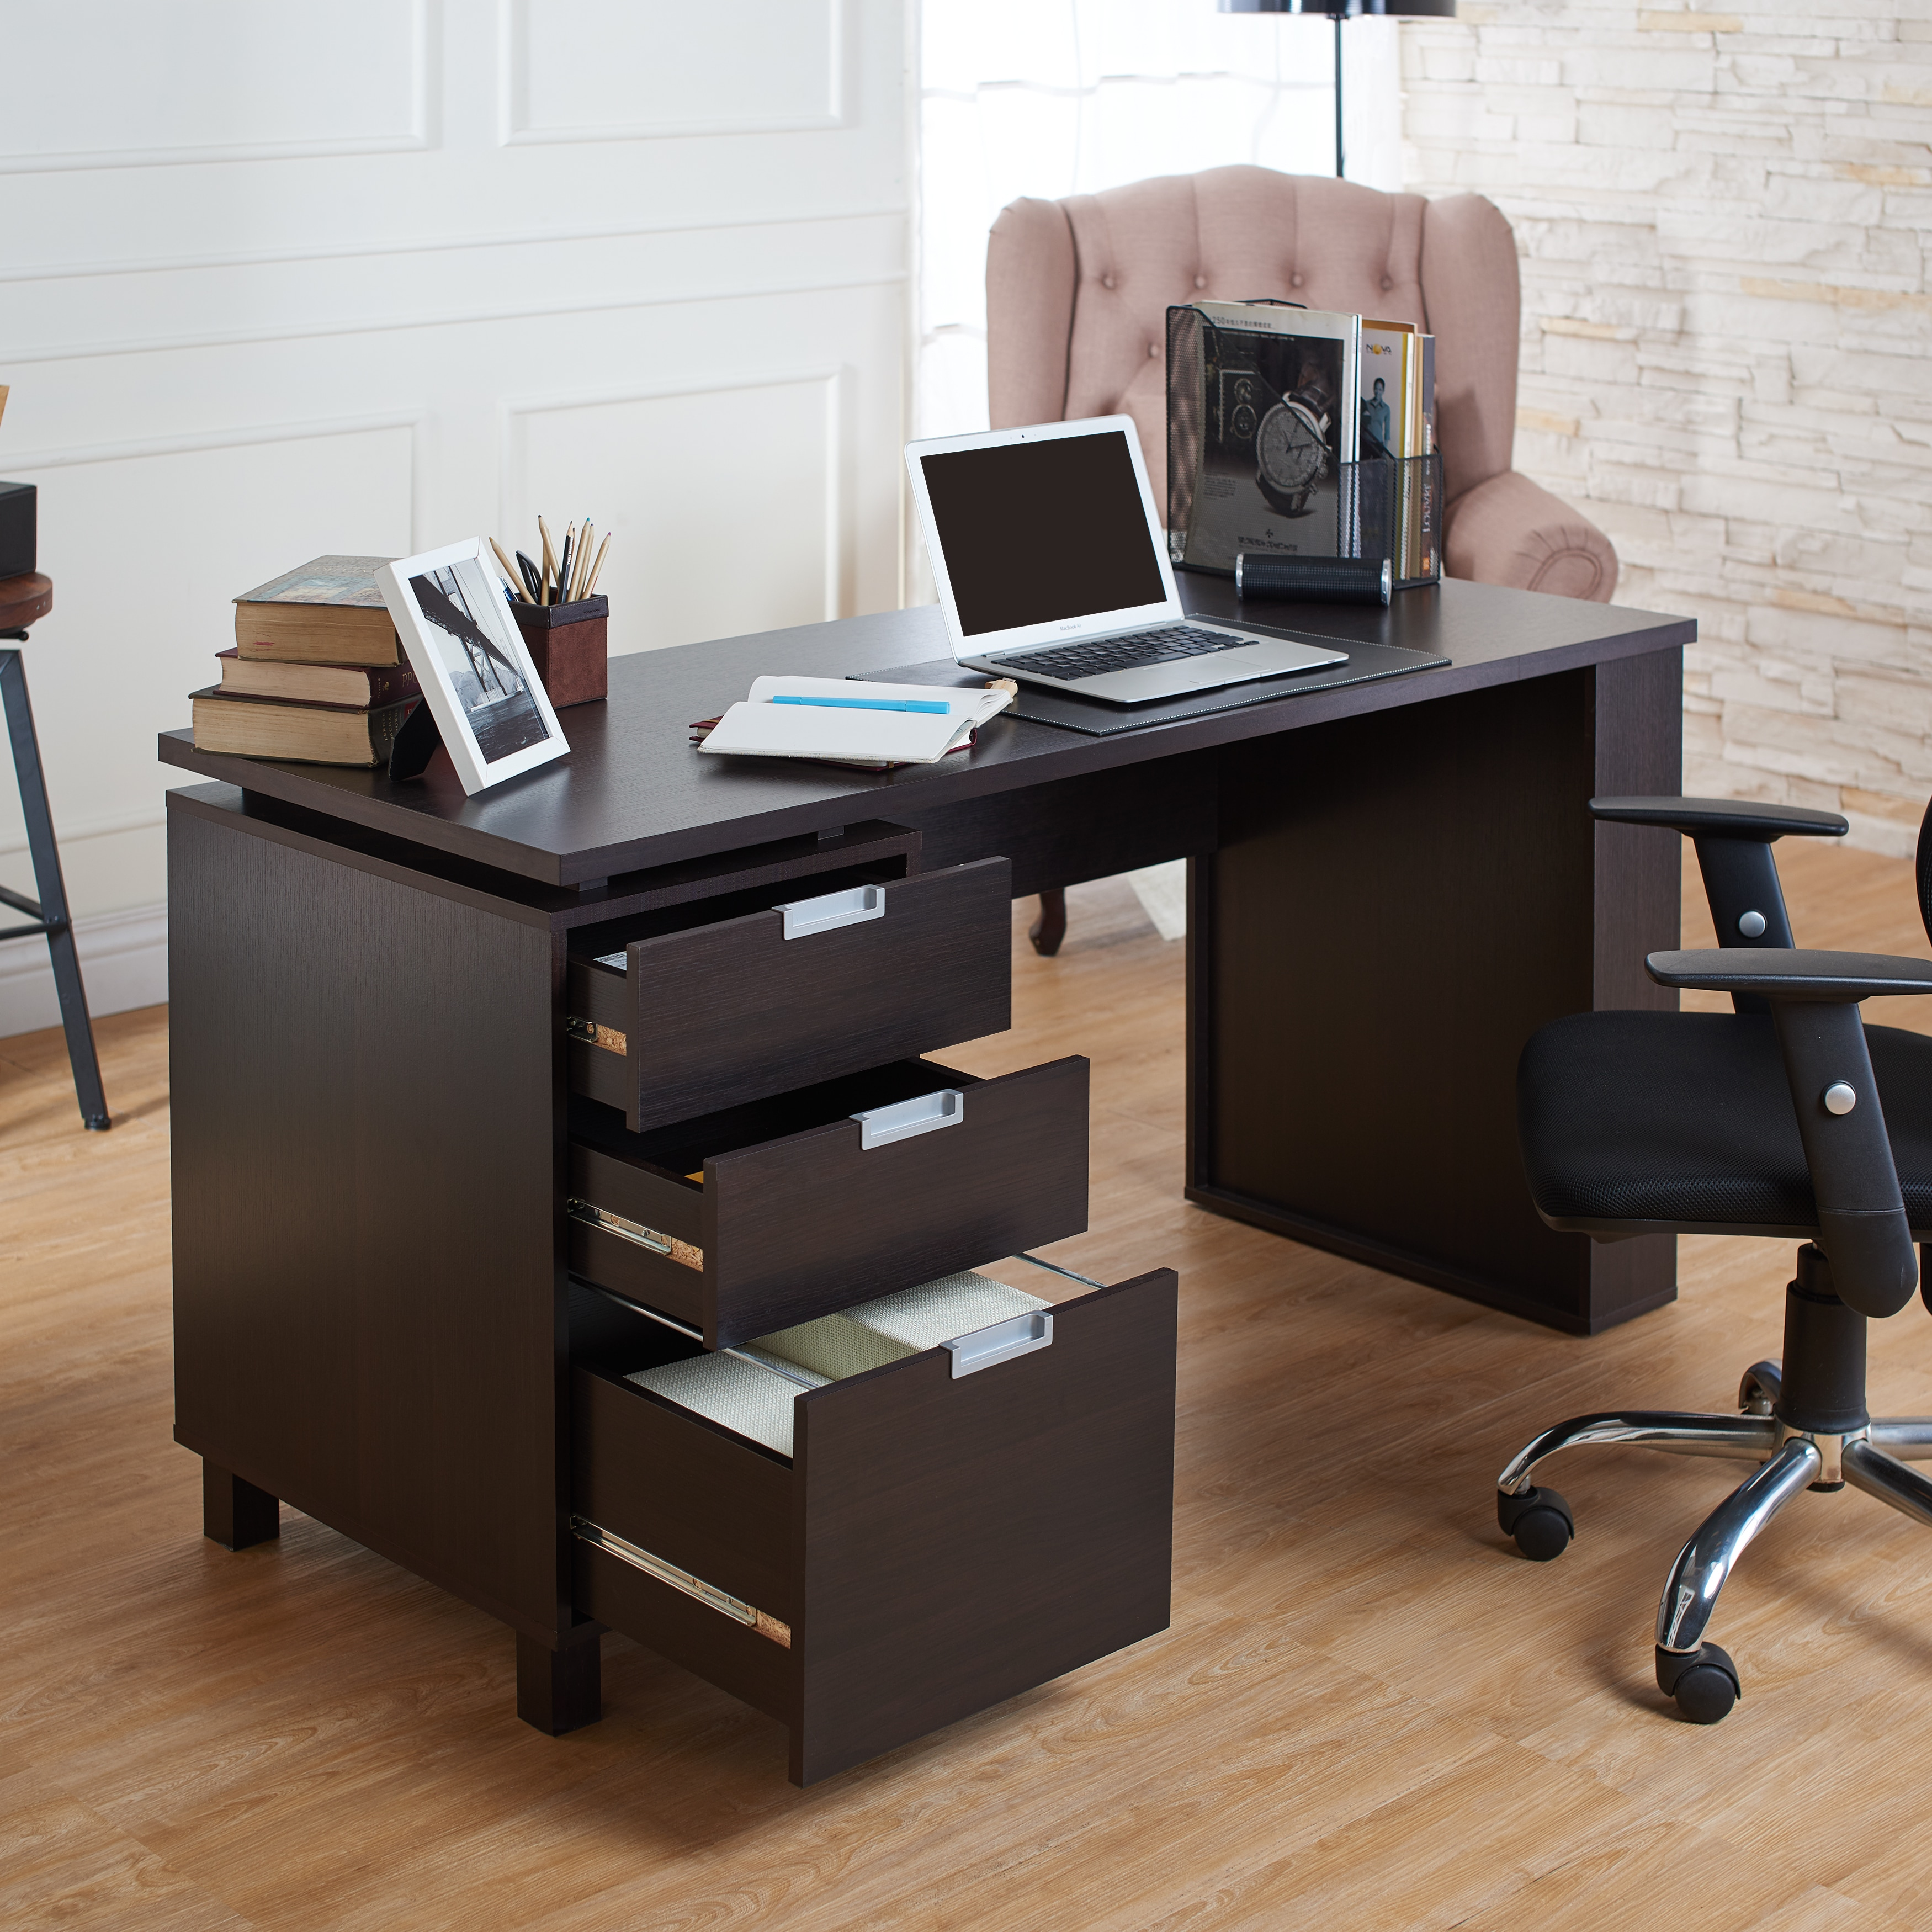 Shop Furniture Of America Tuston Espresso Office Desk With Built In File  Cabinet   On Sale   Free Shipping Today   Overstock.com   10473818